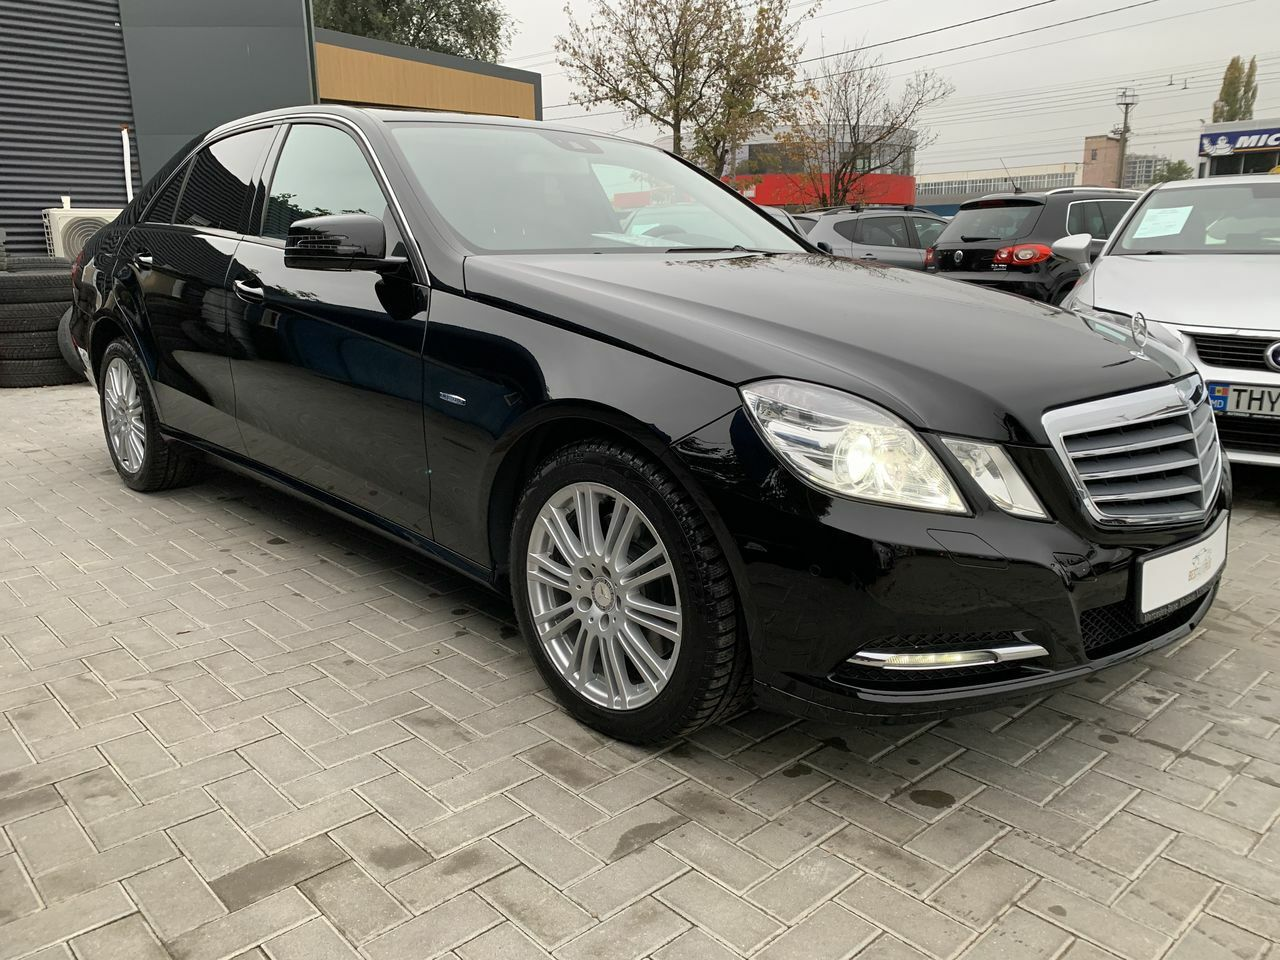 "<span style=""font-weight: bold;"">Mercedes e Class</span>"